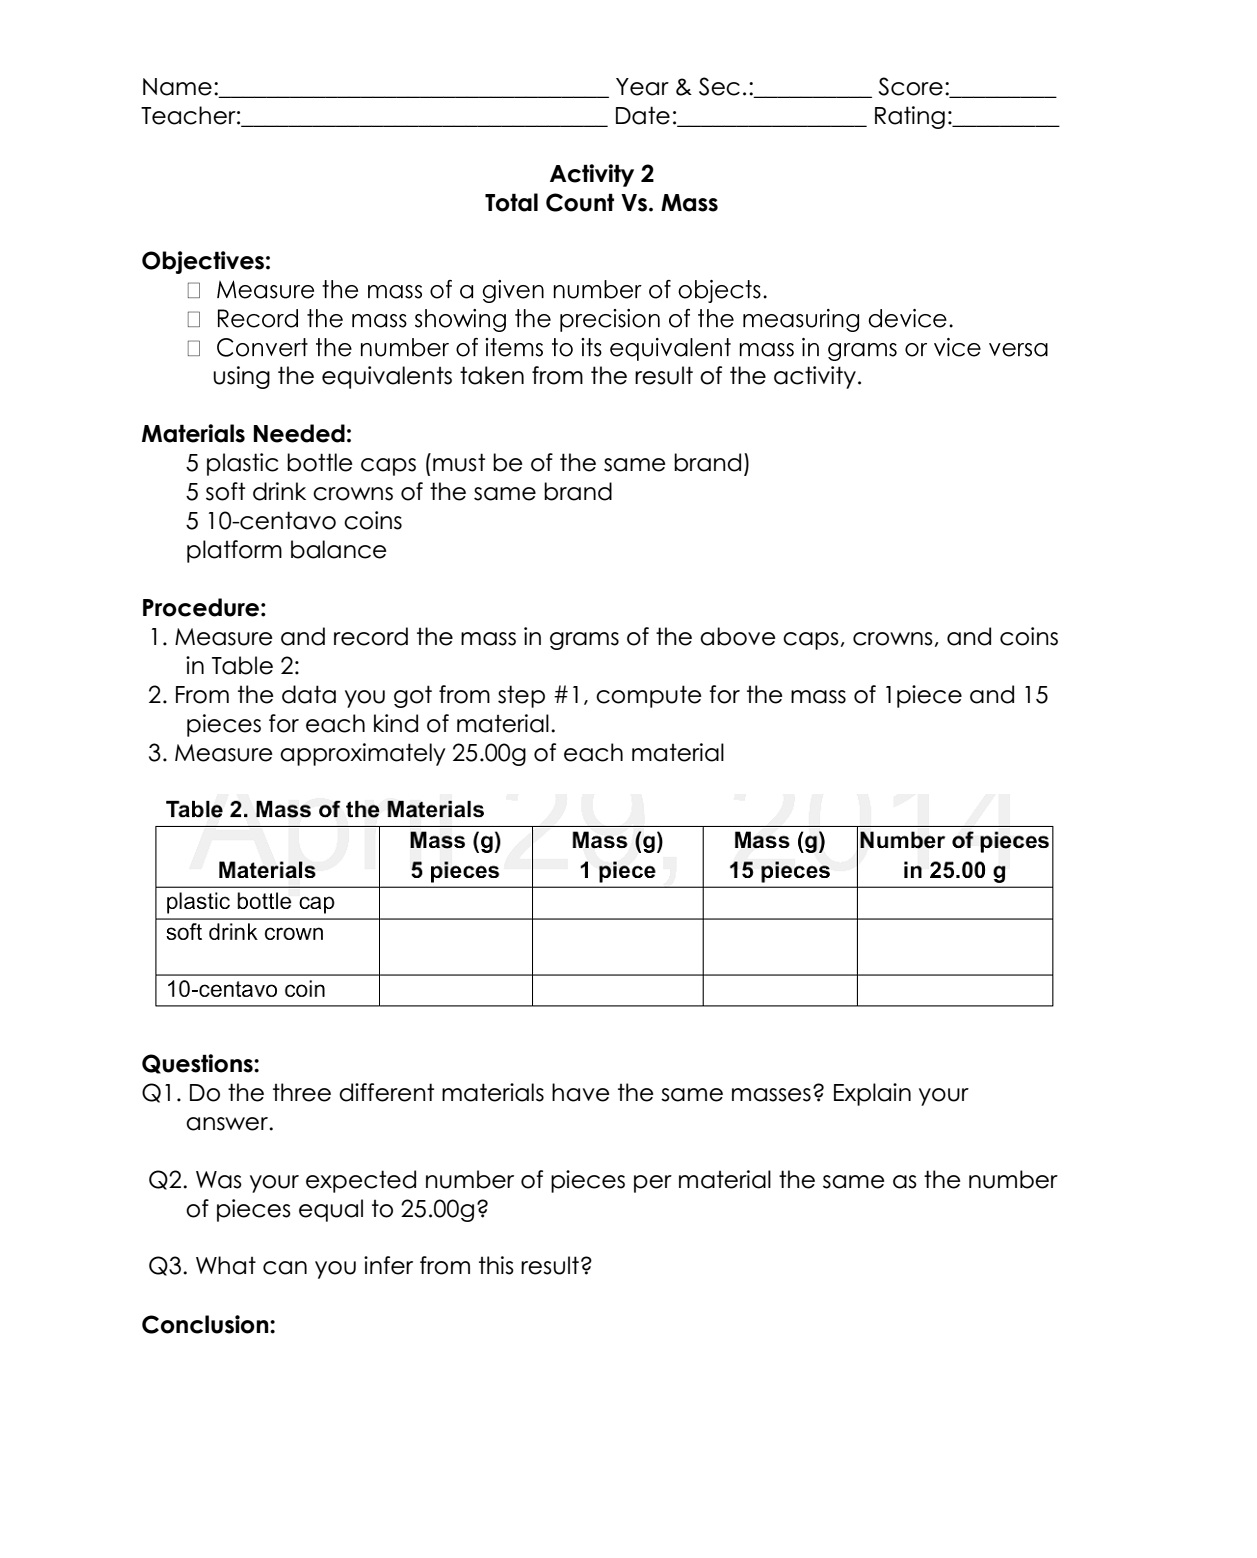 Science Concepts And Questions K To 12 Mole Concept Activities